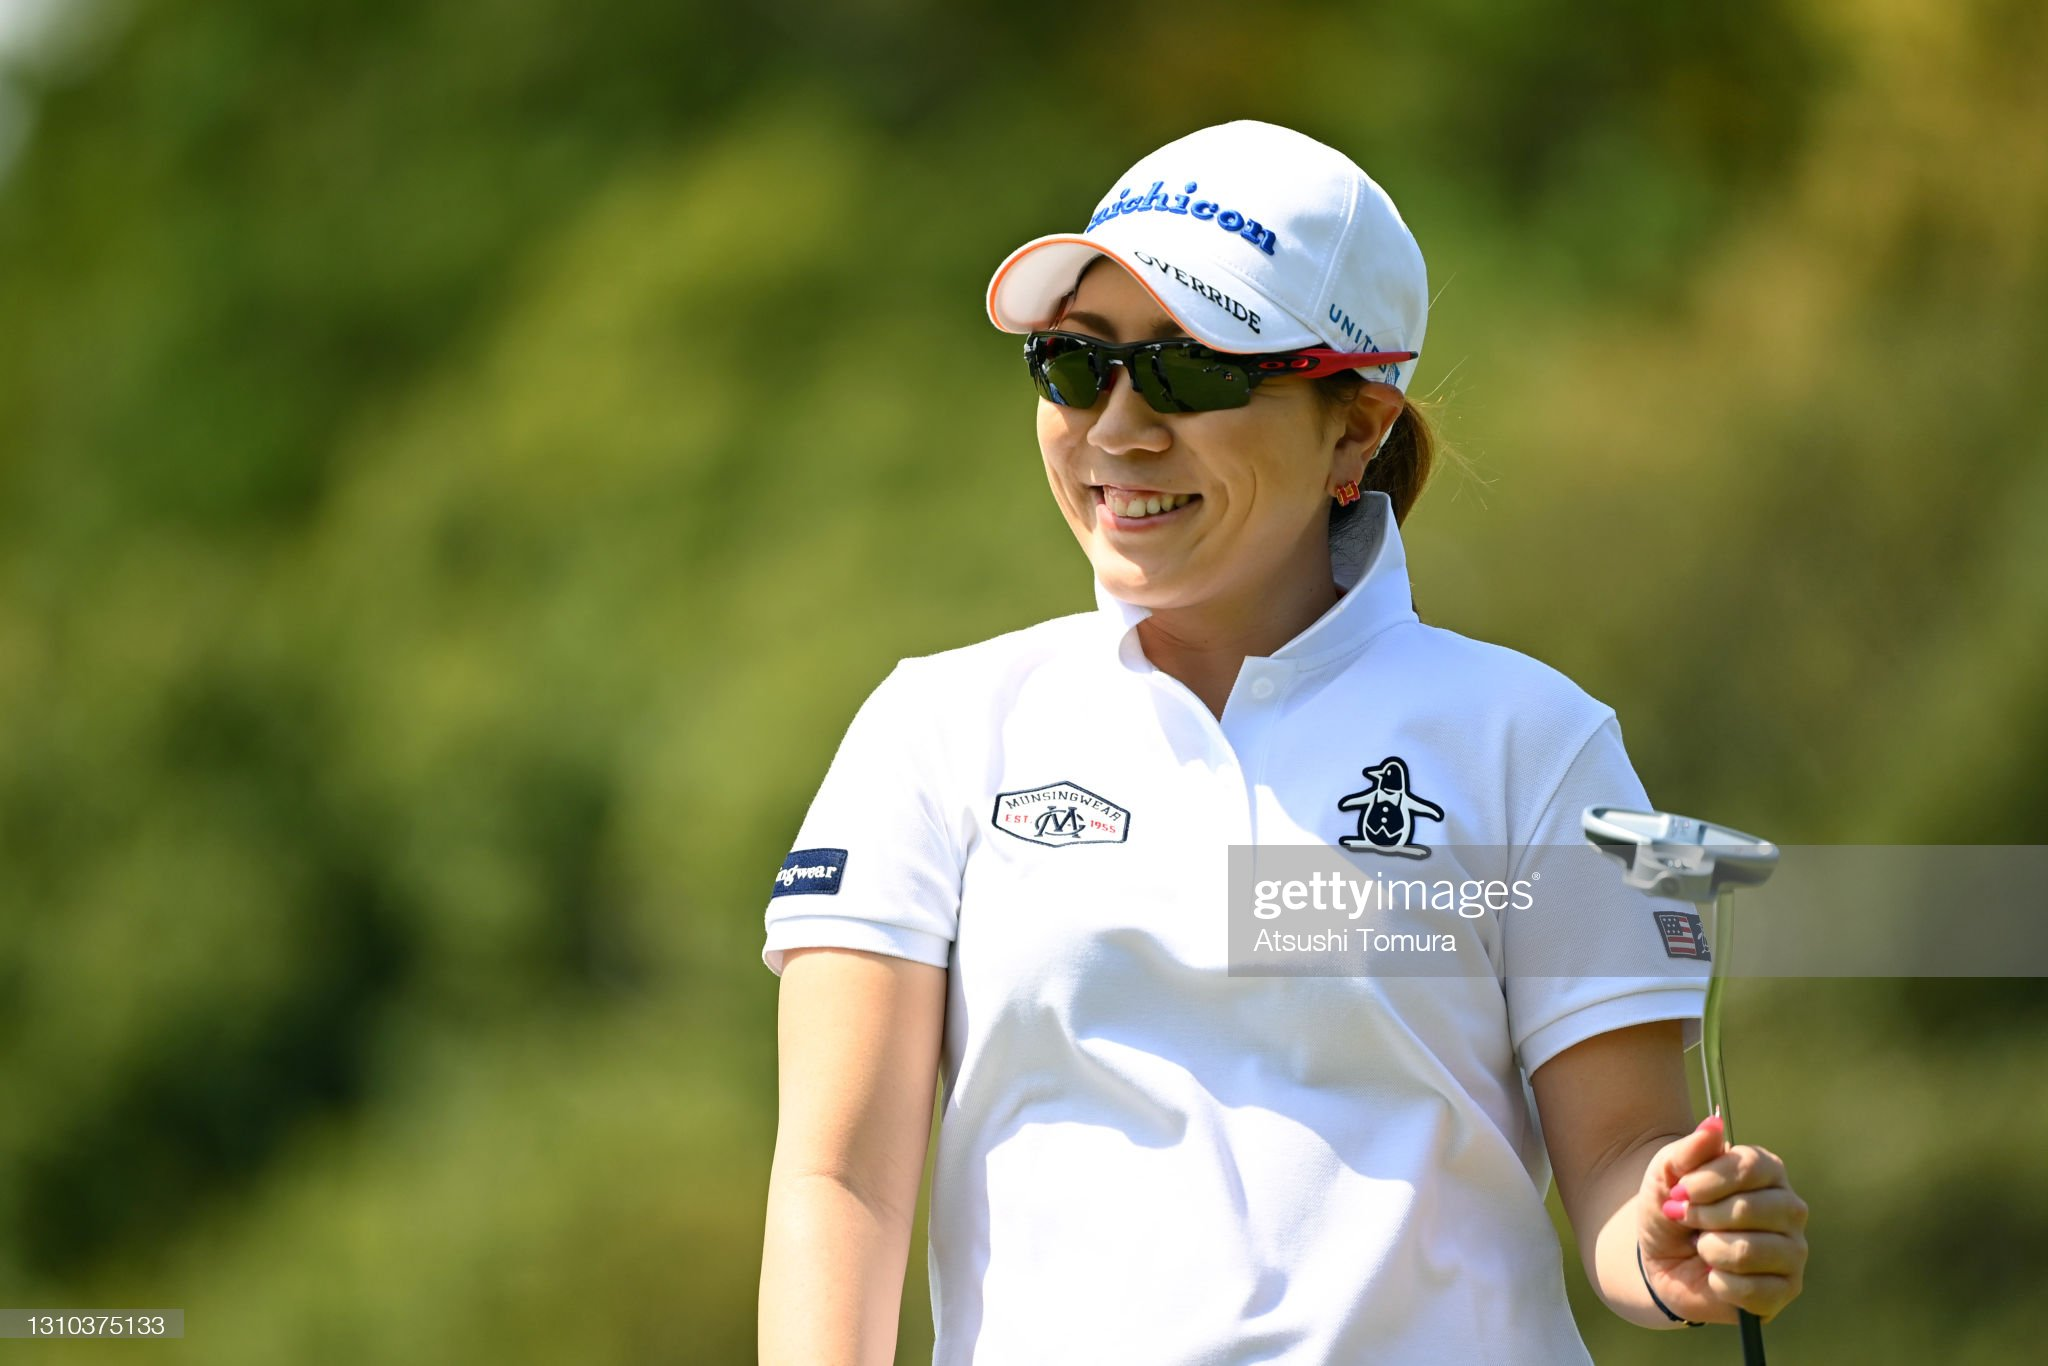 https://media.gettyimages.com/photos/mika-miyazato-of-japan-smiles-on-the-11th-green-during-the-second-of-picture-id1310375133?s=2048x2048